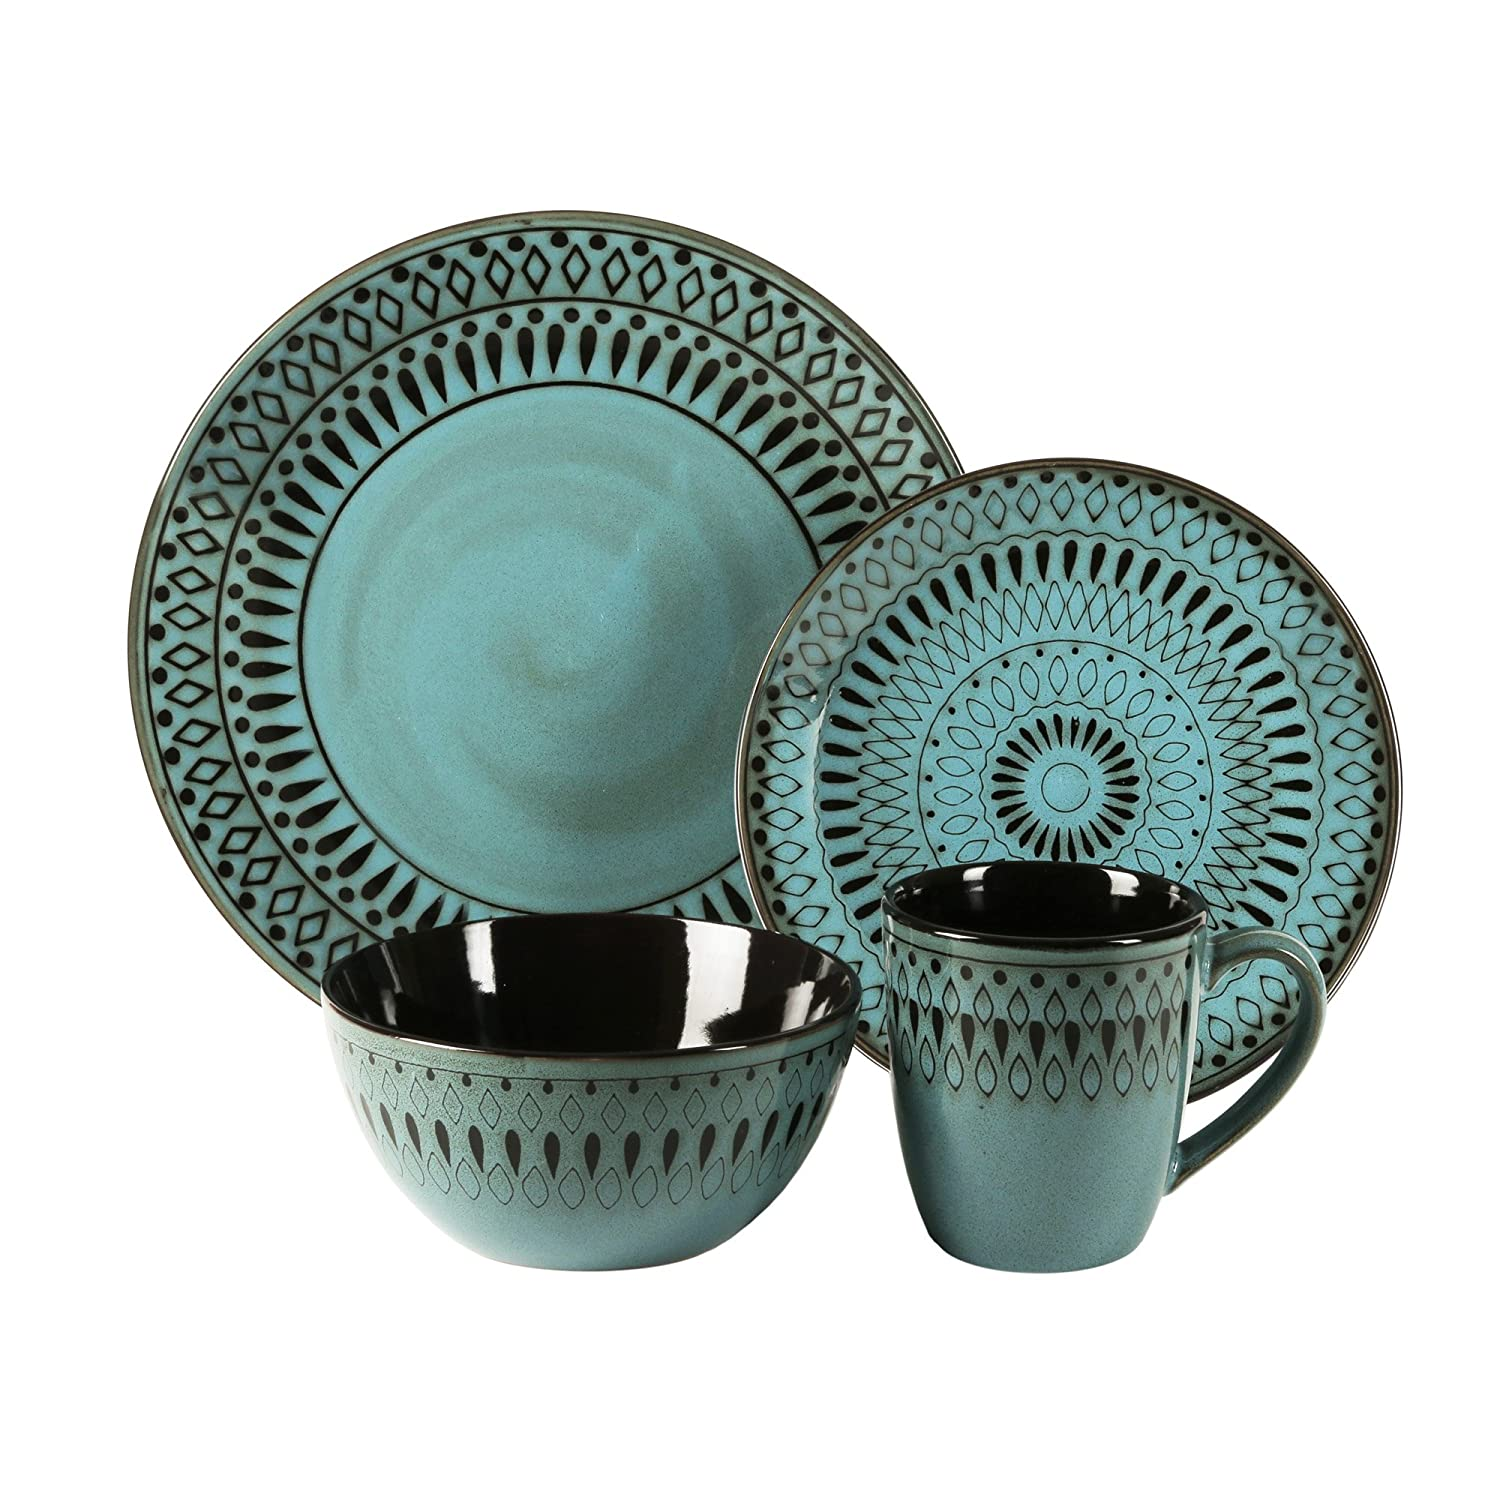 American Atelier 6588-16rb 16 Piece Delilah Round Dinnerware Set, Green